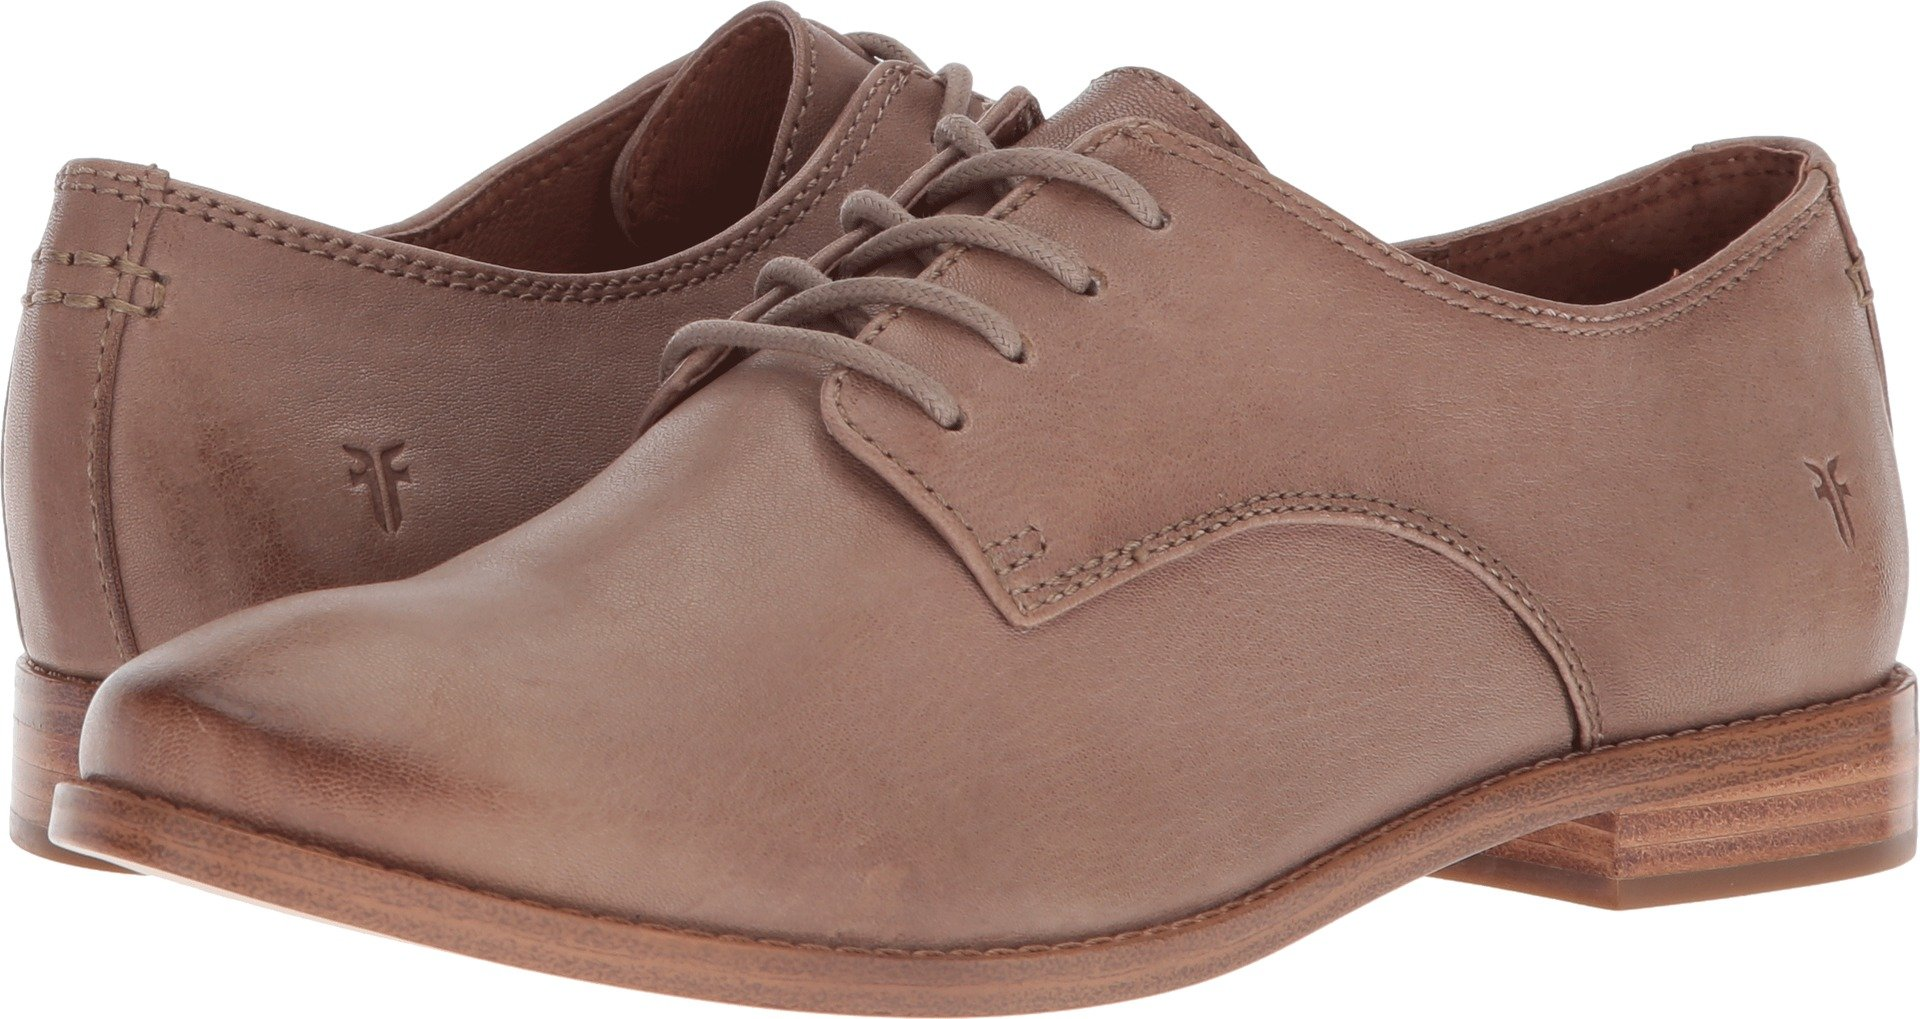 FRYE Women's Anna Oxford Ash 8 B US